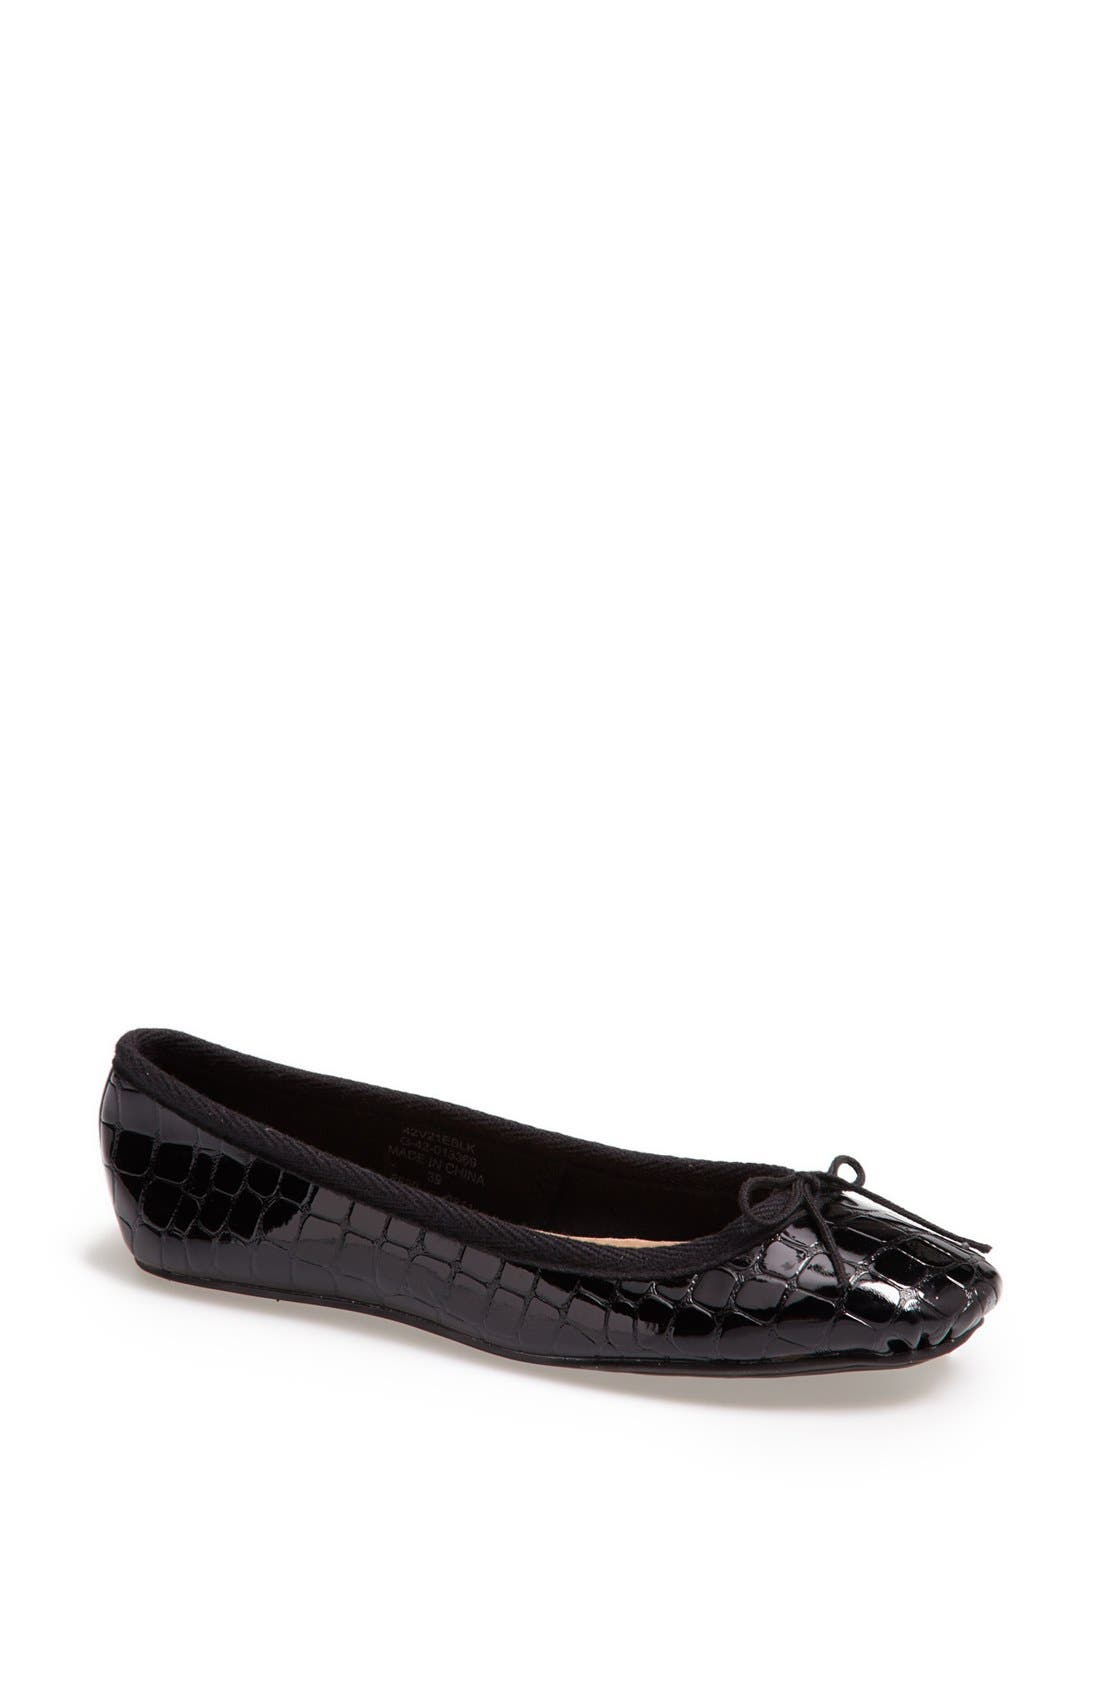 Alternate Image 1 Selected - Topshop 'Vibrant' Croc Embossed Ballet Flat